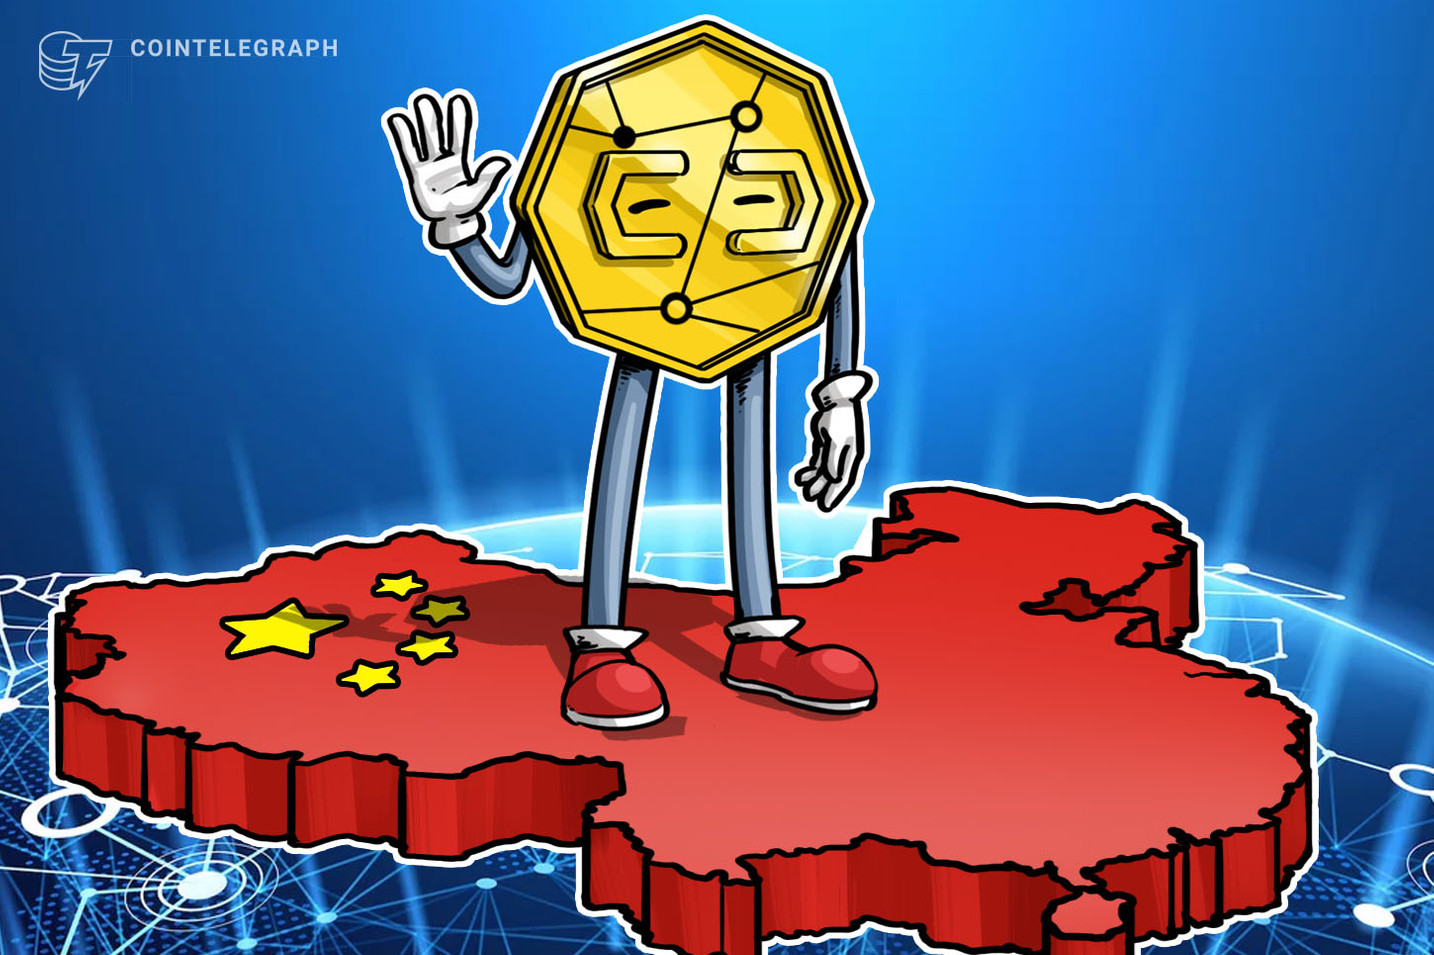 China Digital Currency 'Not Seeking Full Data Control' — Central Bank